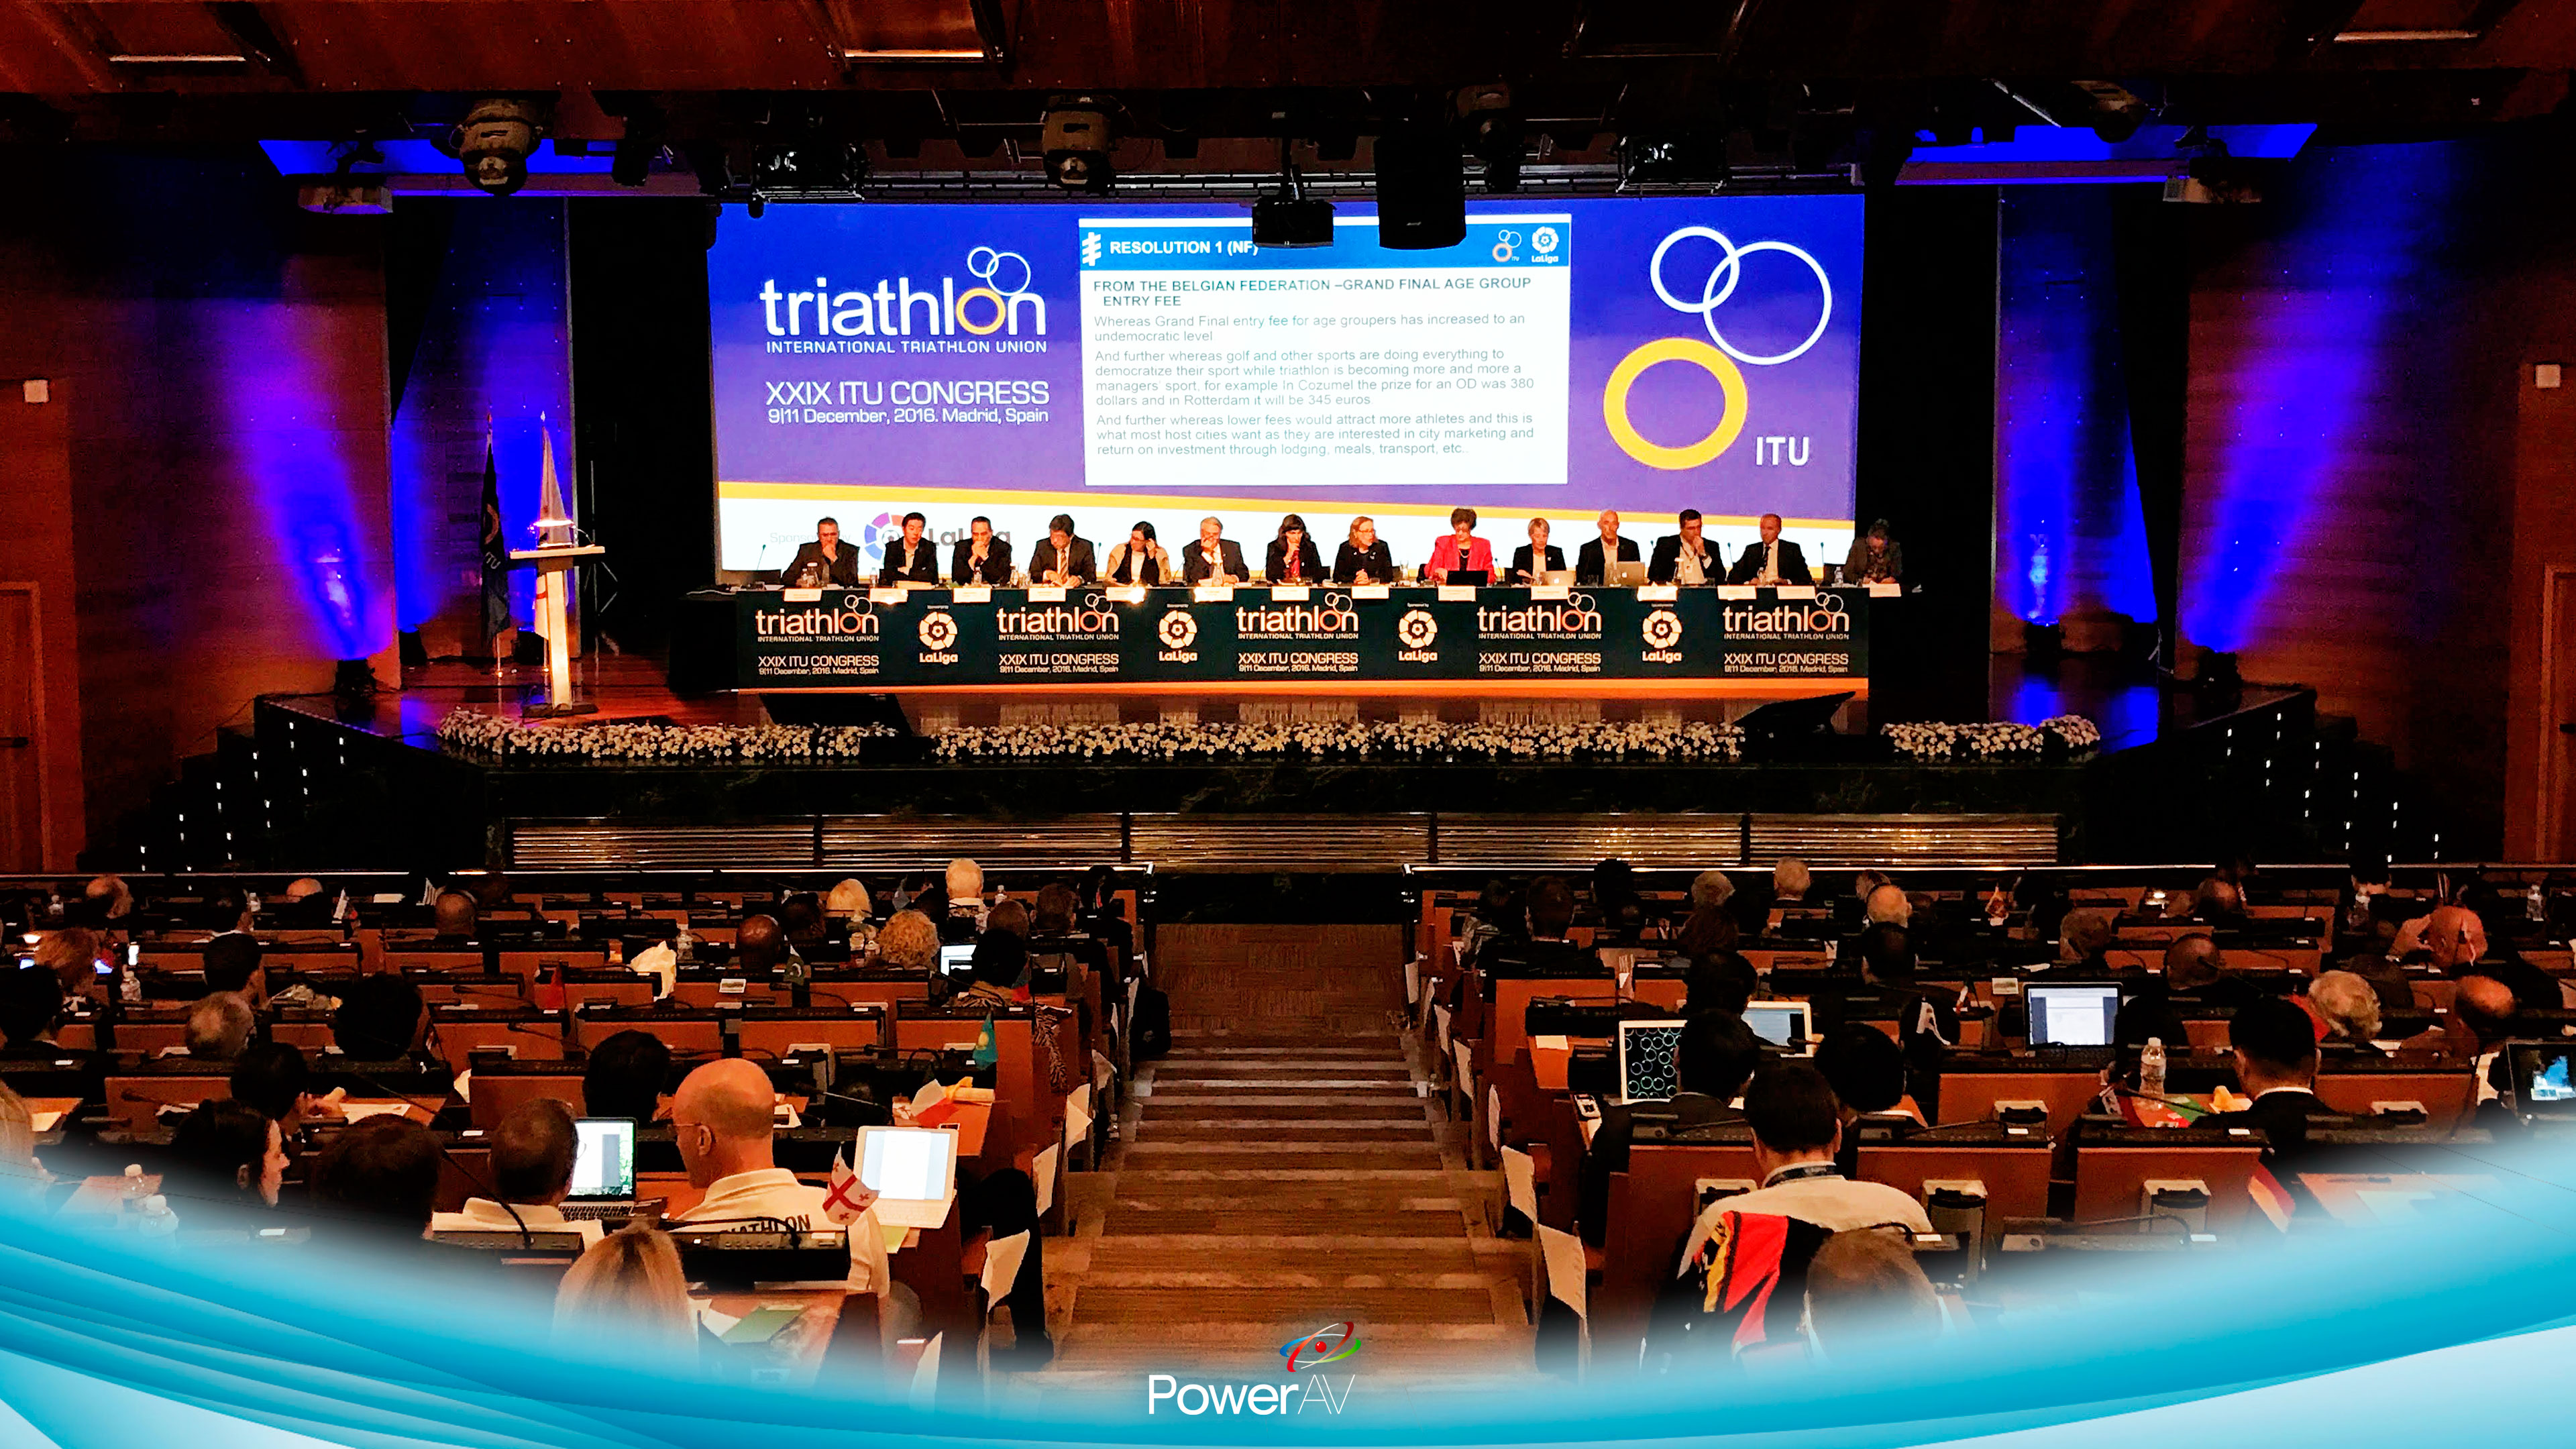 Congreso ITU - Triathlon